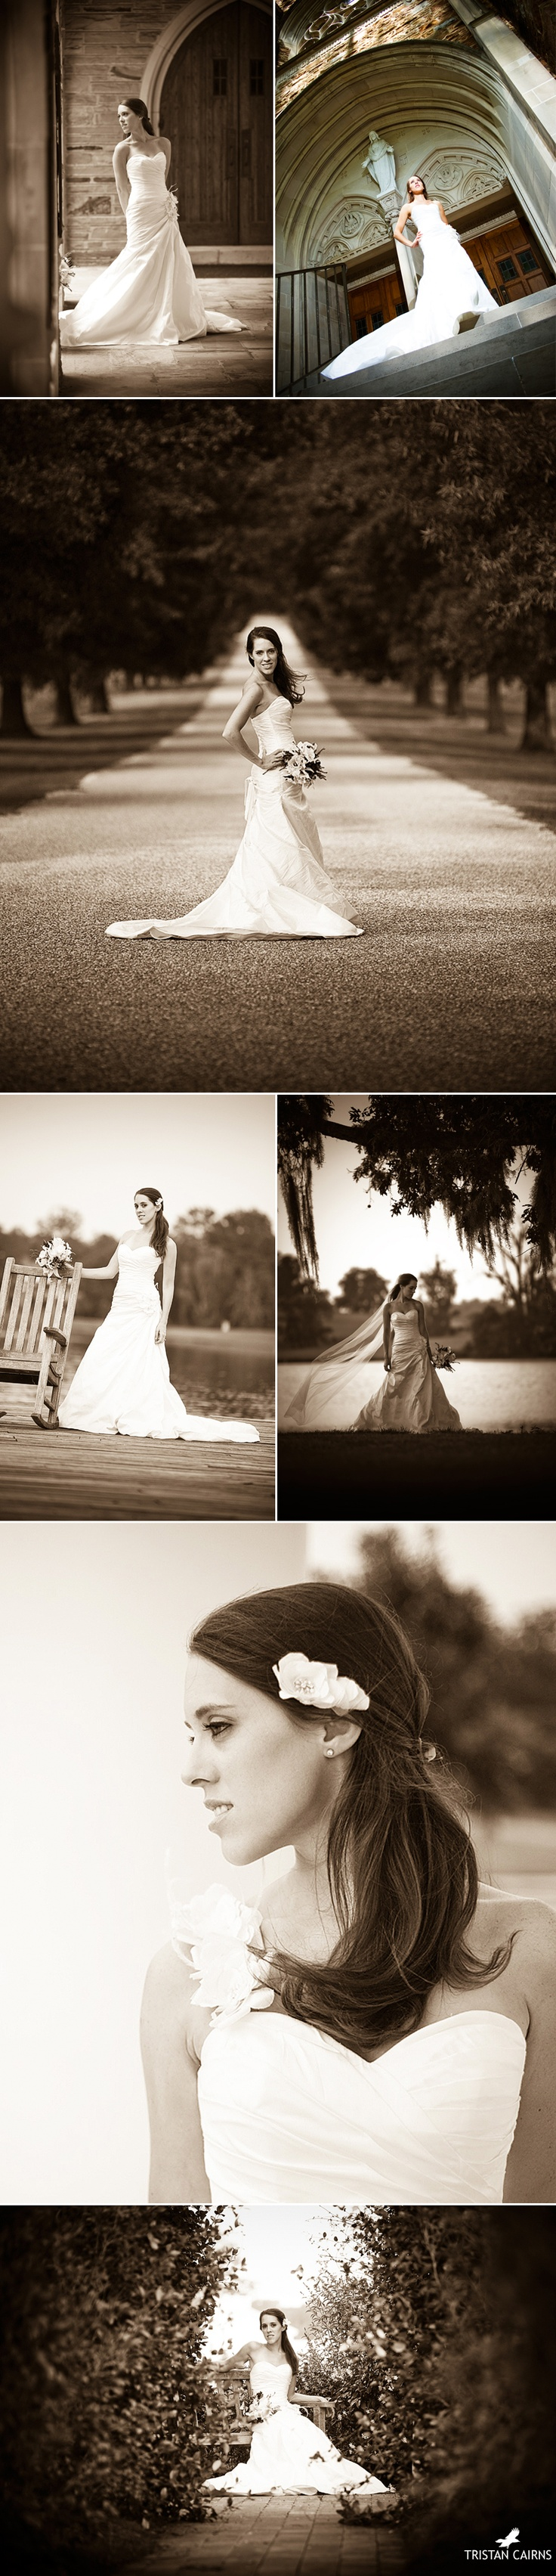 Tristan Cairns is such a great photographer!! And he does the most beautiful wedding photography! look him up at tristancairns.wordpress.com